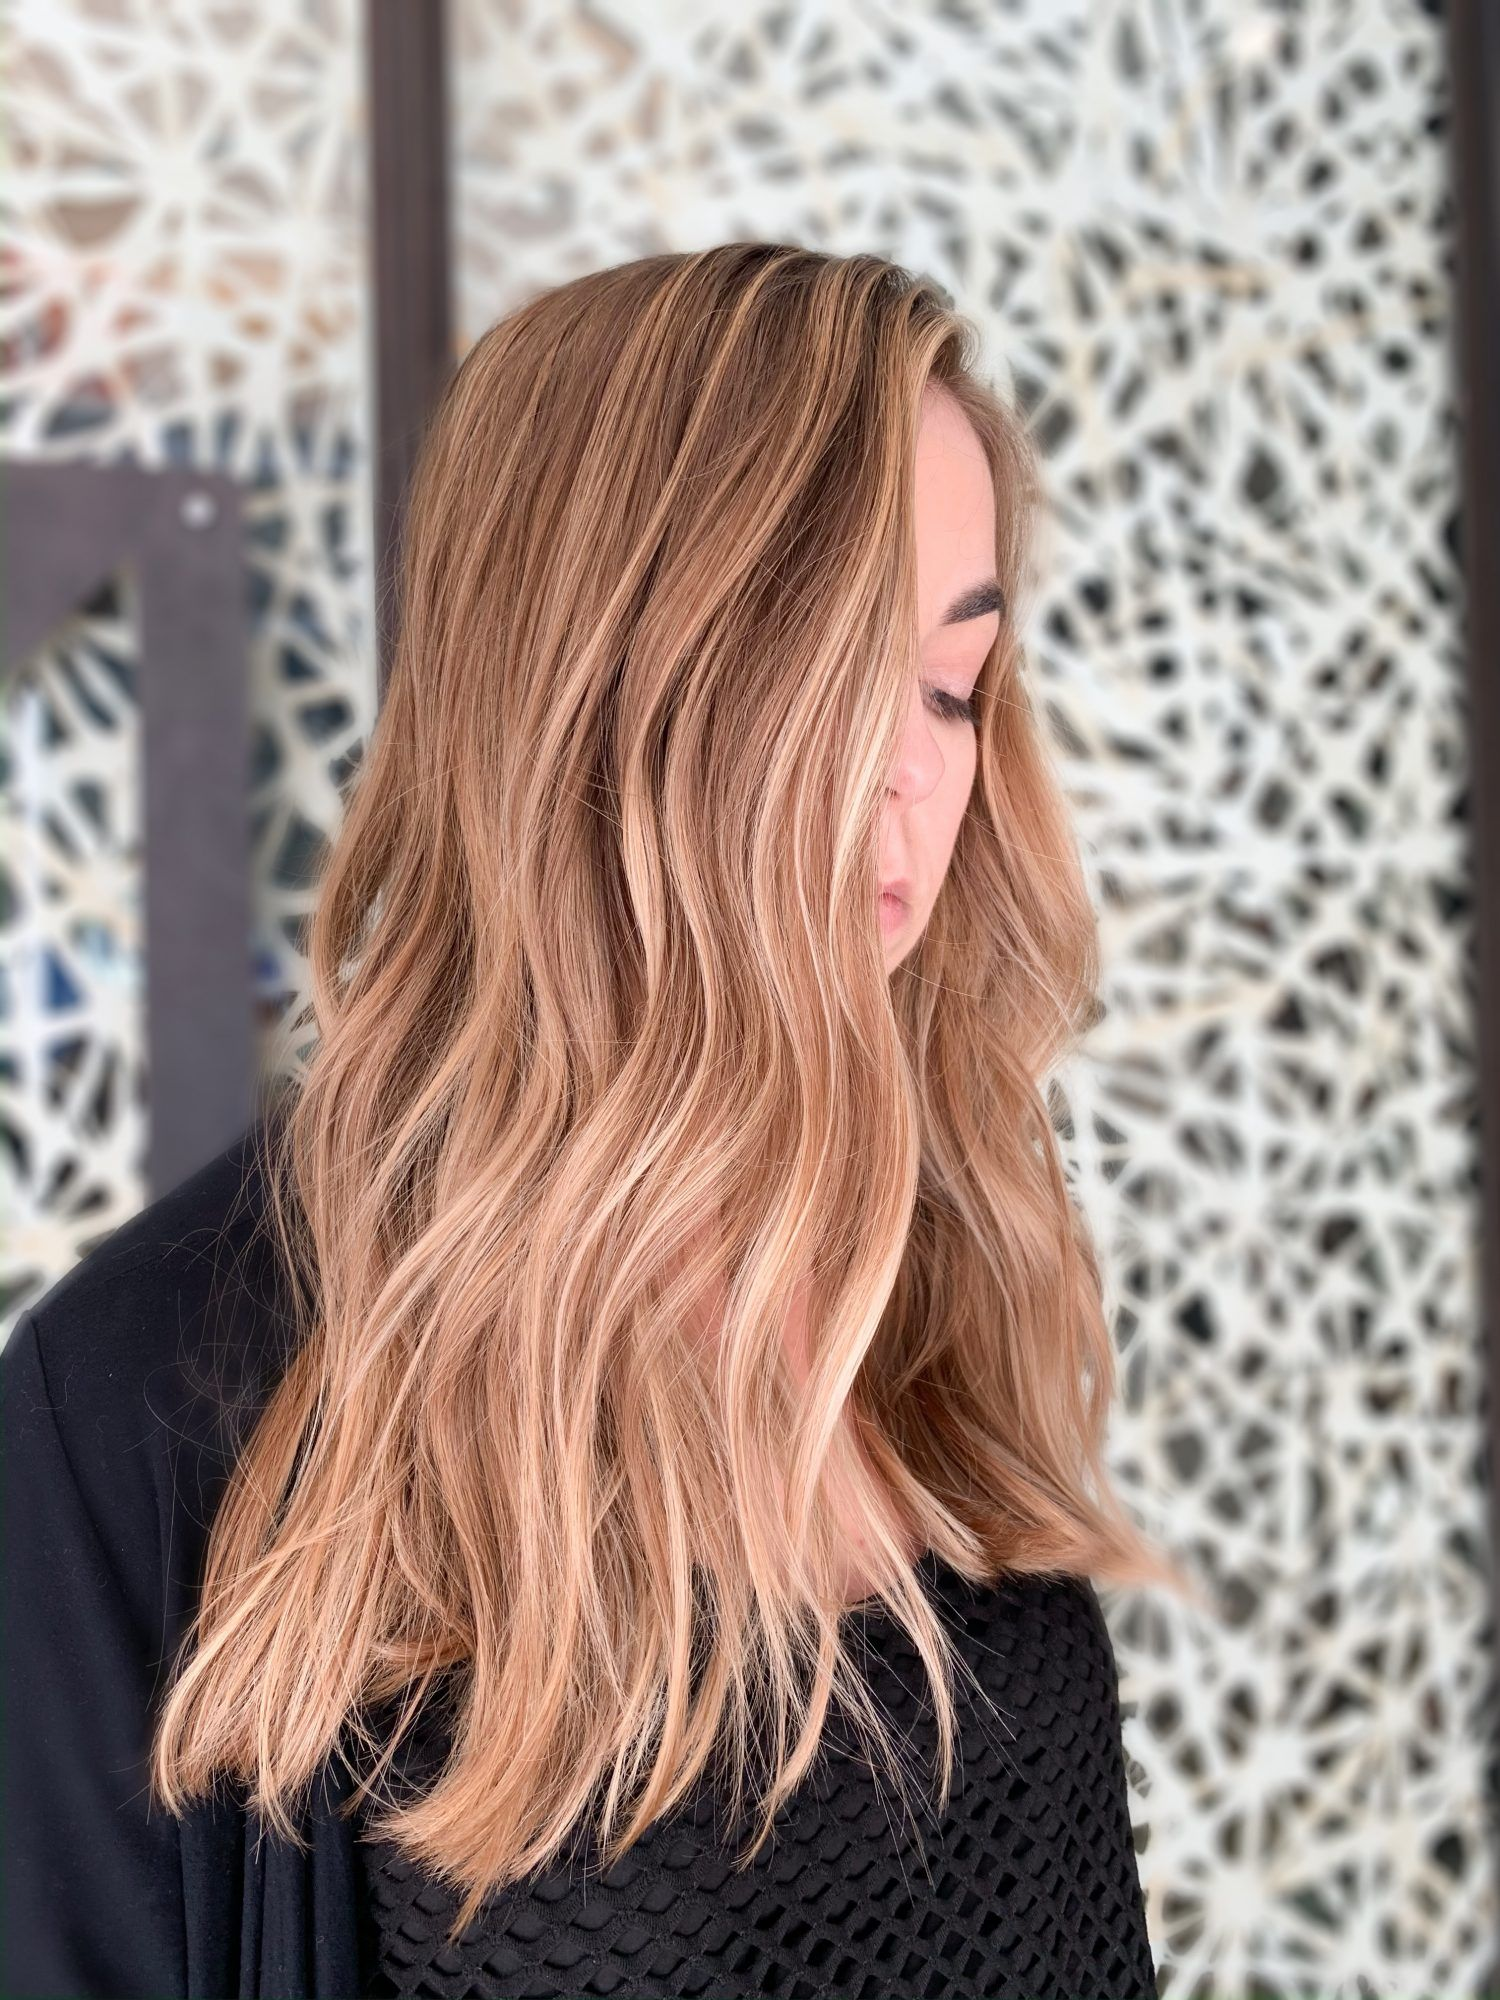 Toasted Strawberry Blonde Is Spring S Hottest Hair Color In 2020 Spring Hair Color Spring Hair Color Trends Spring Hairstyles